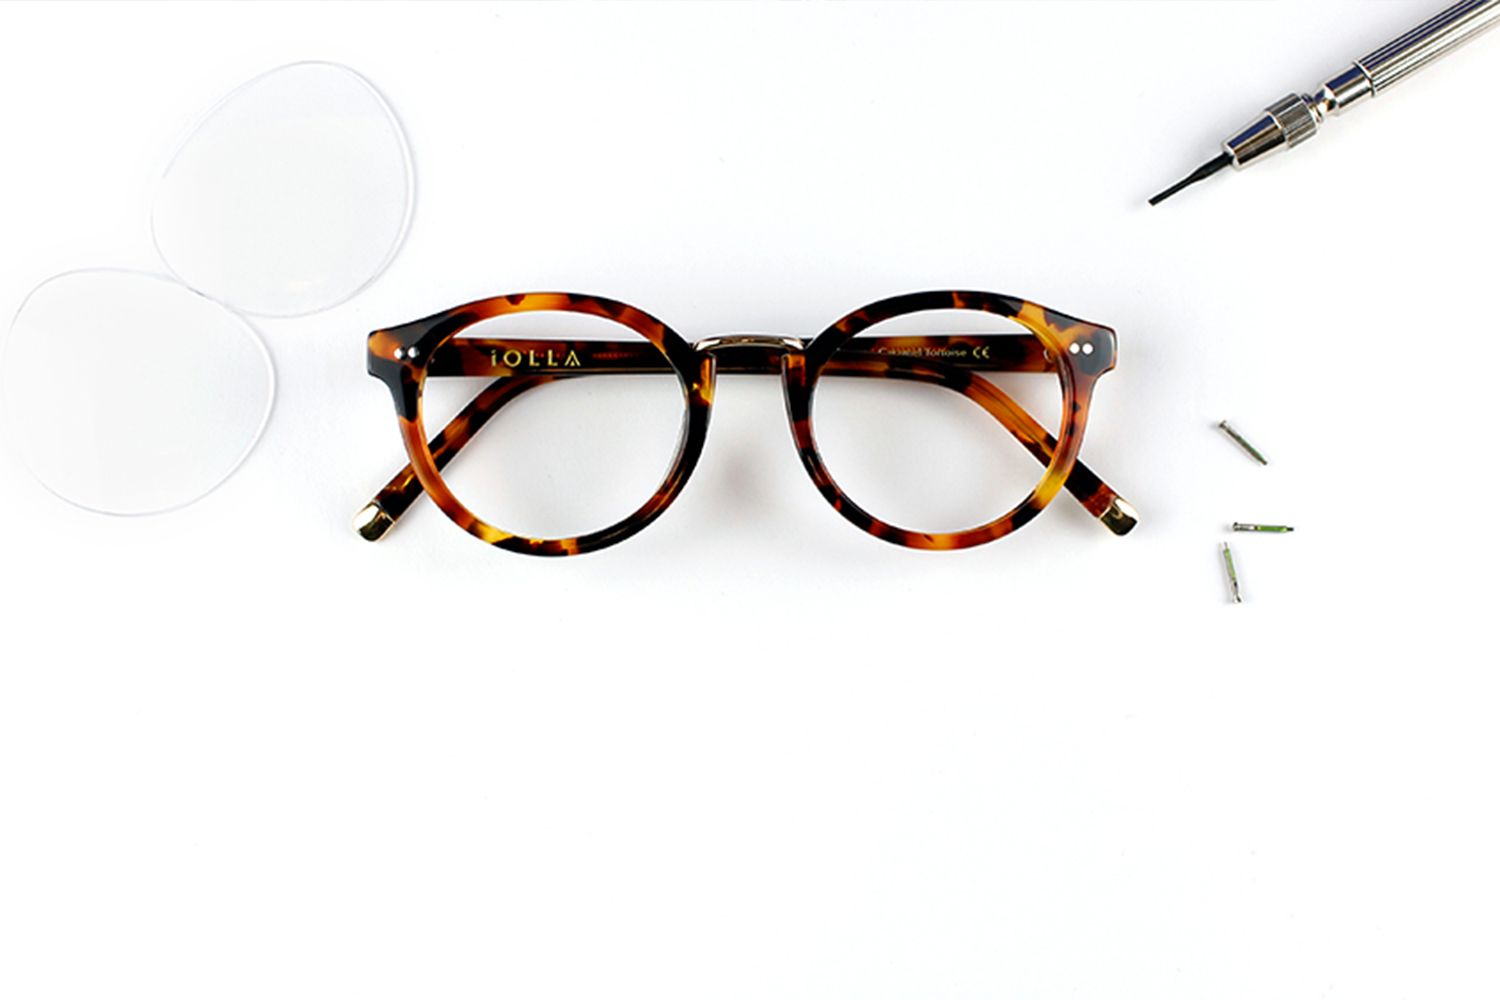 2d1049c2f119 IOLLA - A whole new way to enjoy eyewear - Priced at £65